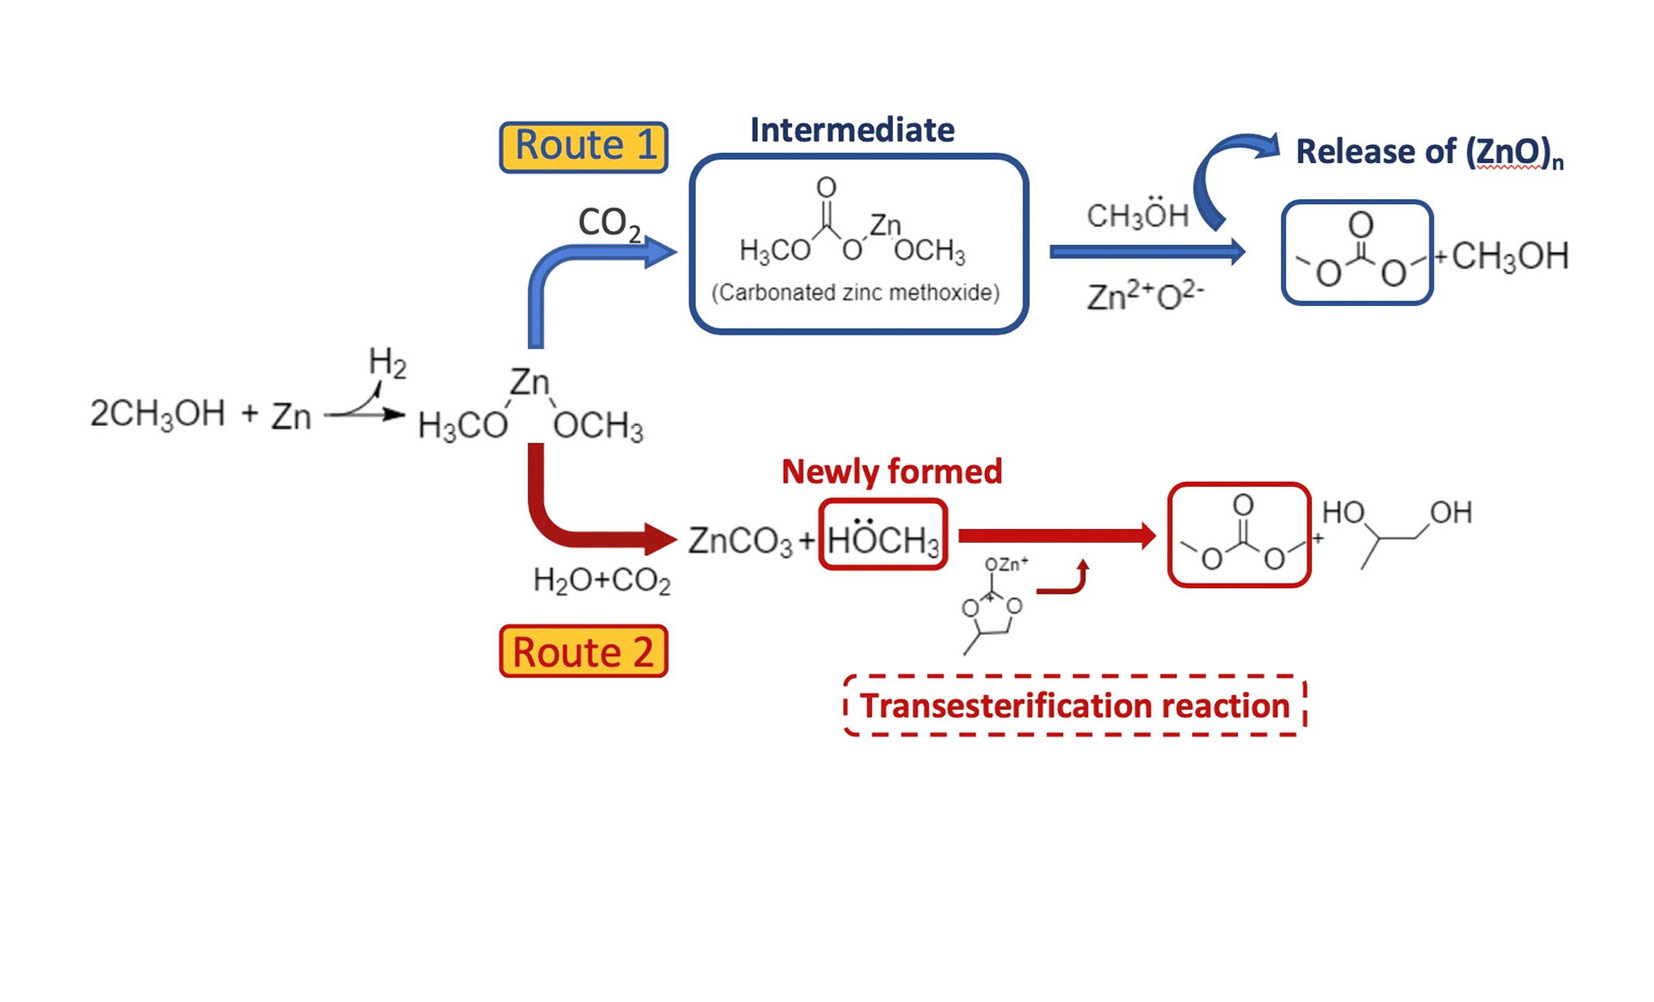 The role of Zn in the sustainable one-pot synthesis of dimethyl carbonate from carbon dioxide, methanol and propylene oxide